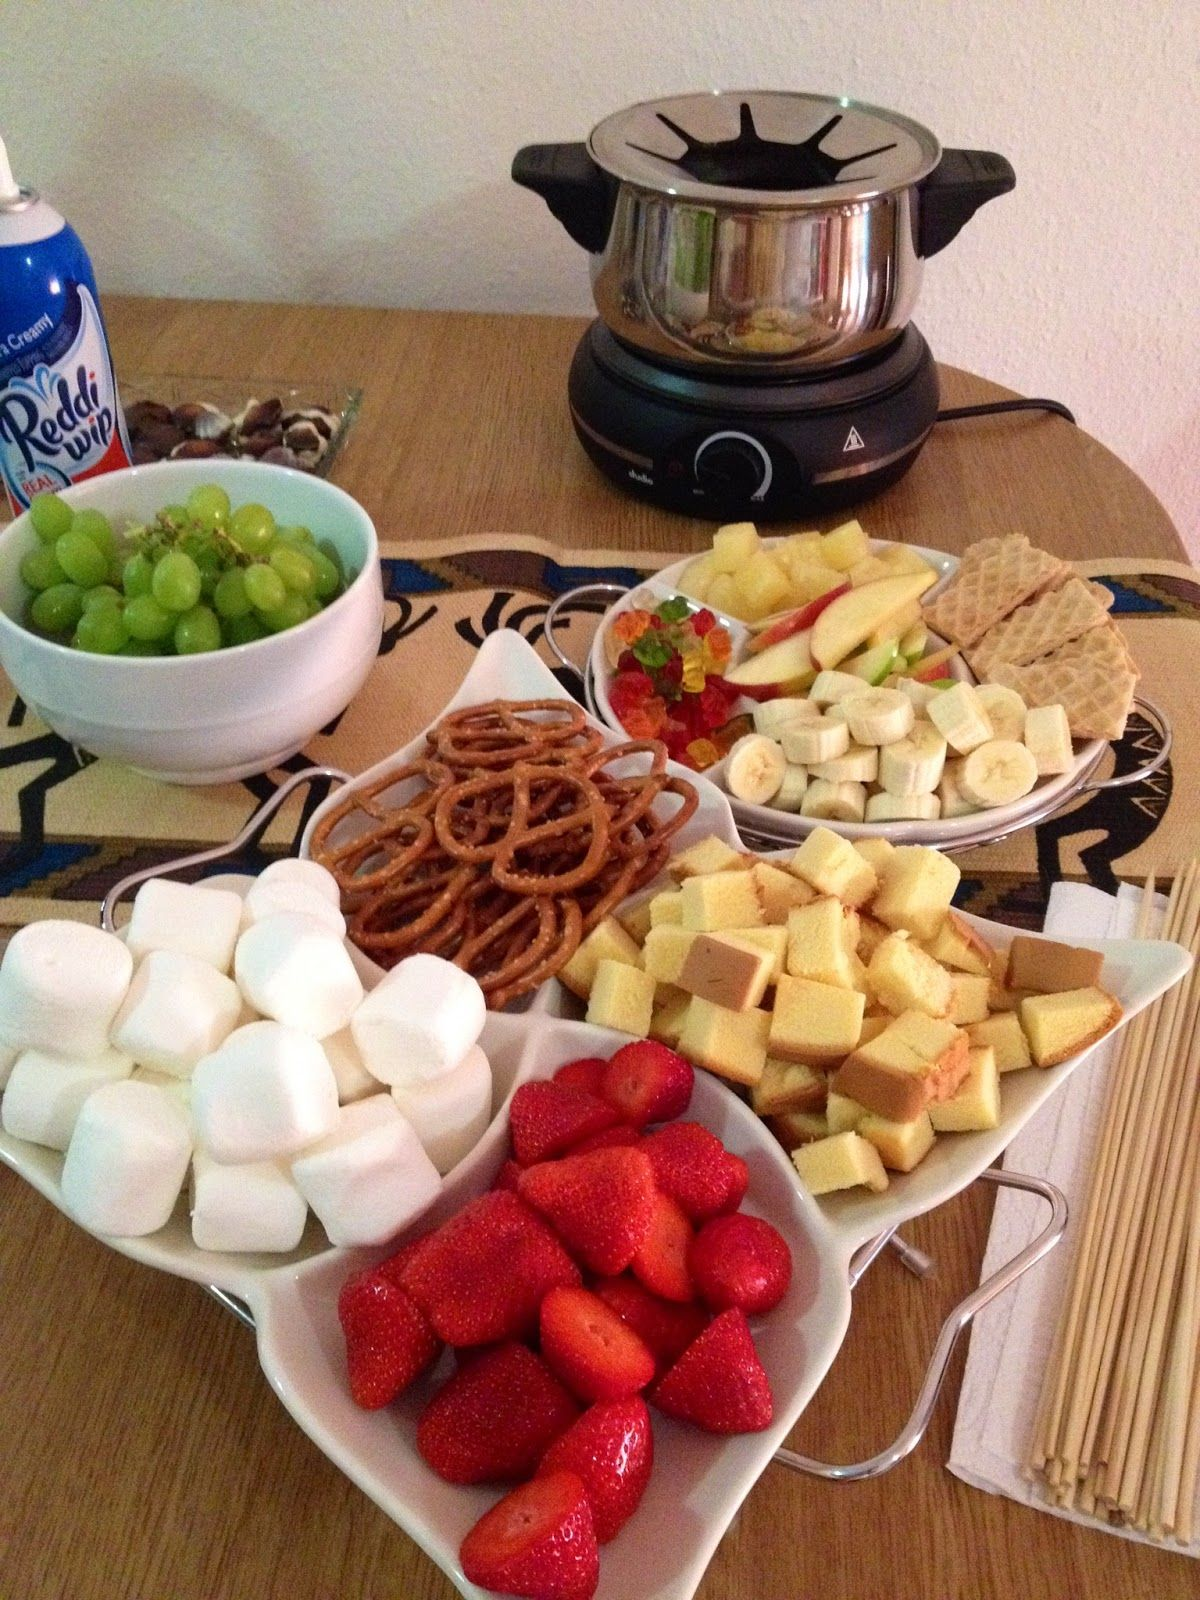 Girls Night In! With chocolate fondue recipe :) | Best Dinner Rx's ...